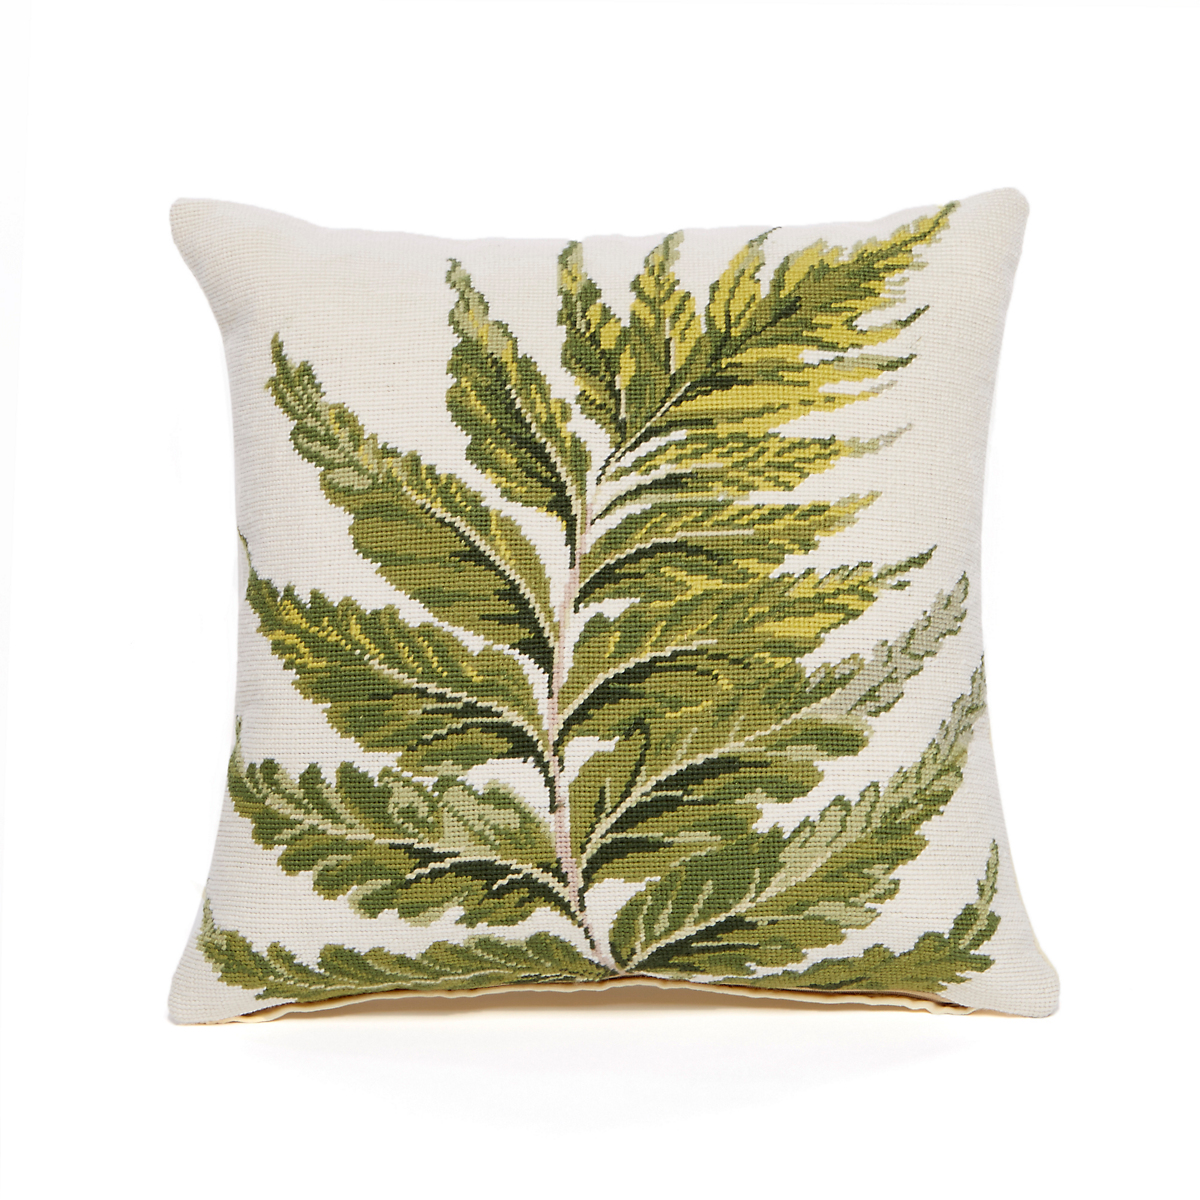 Garden Holly Fern Needlepoint Pillow